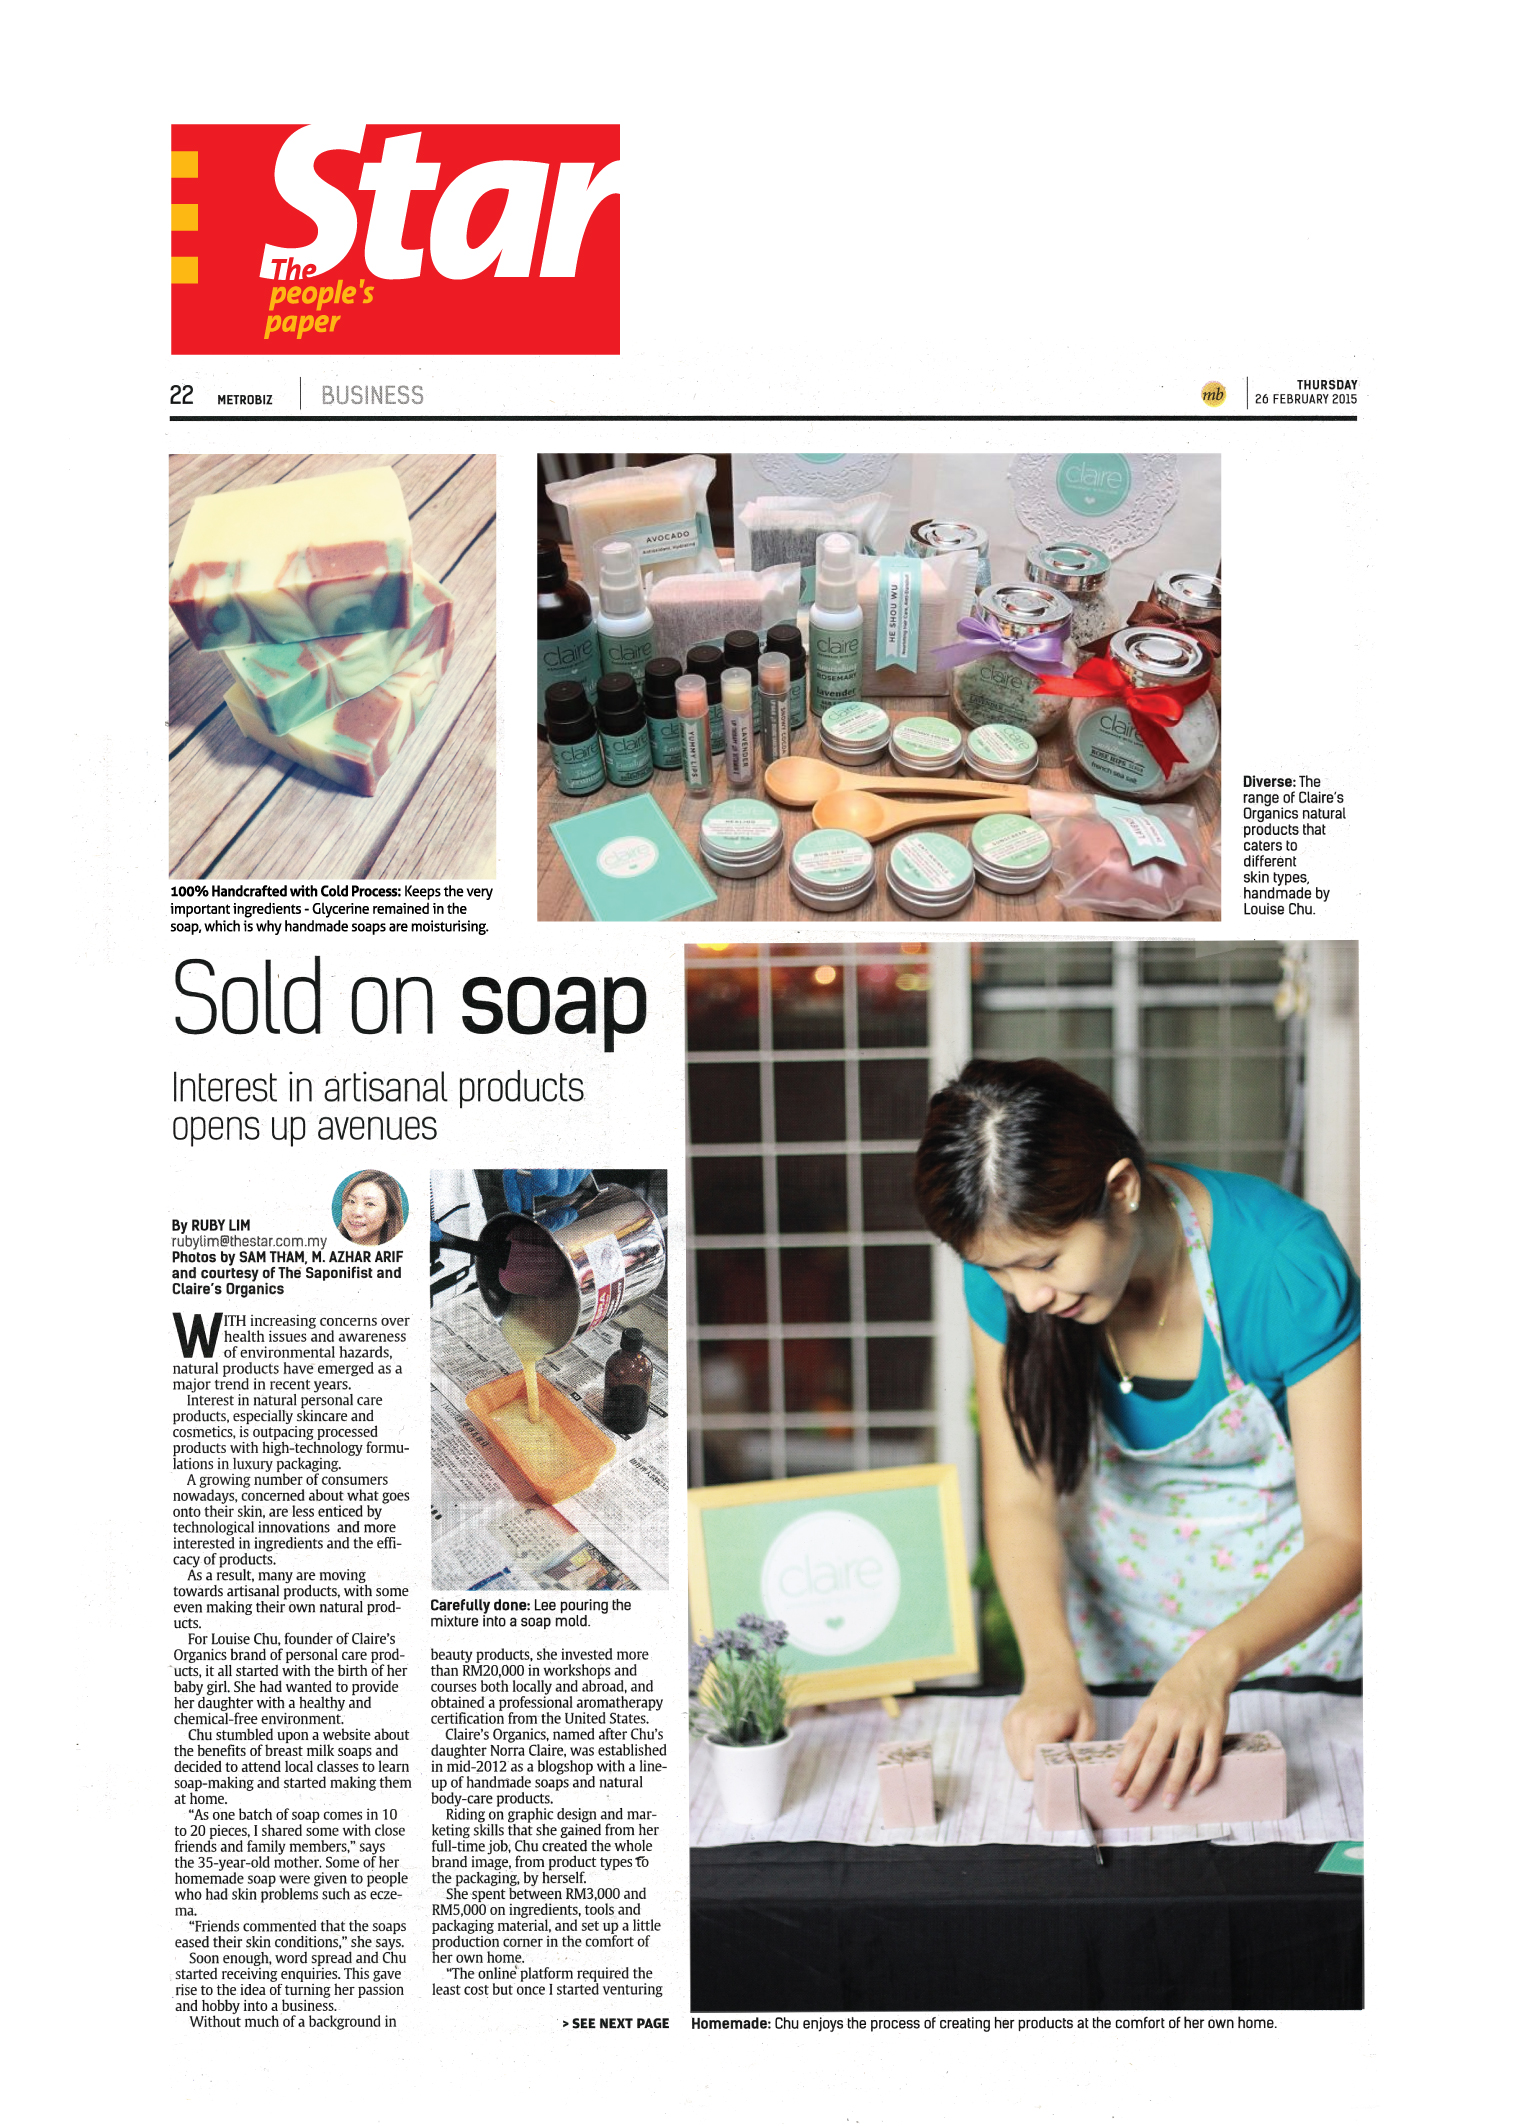 Claire Organics featured on The Star